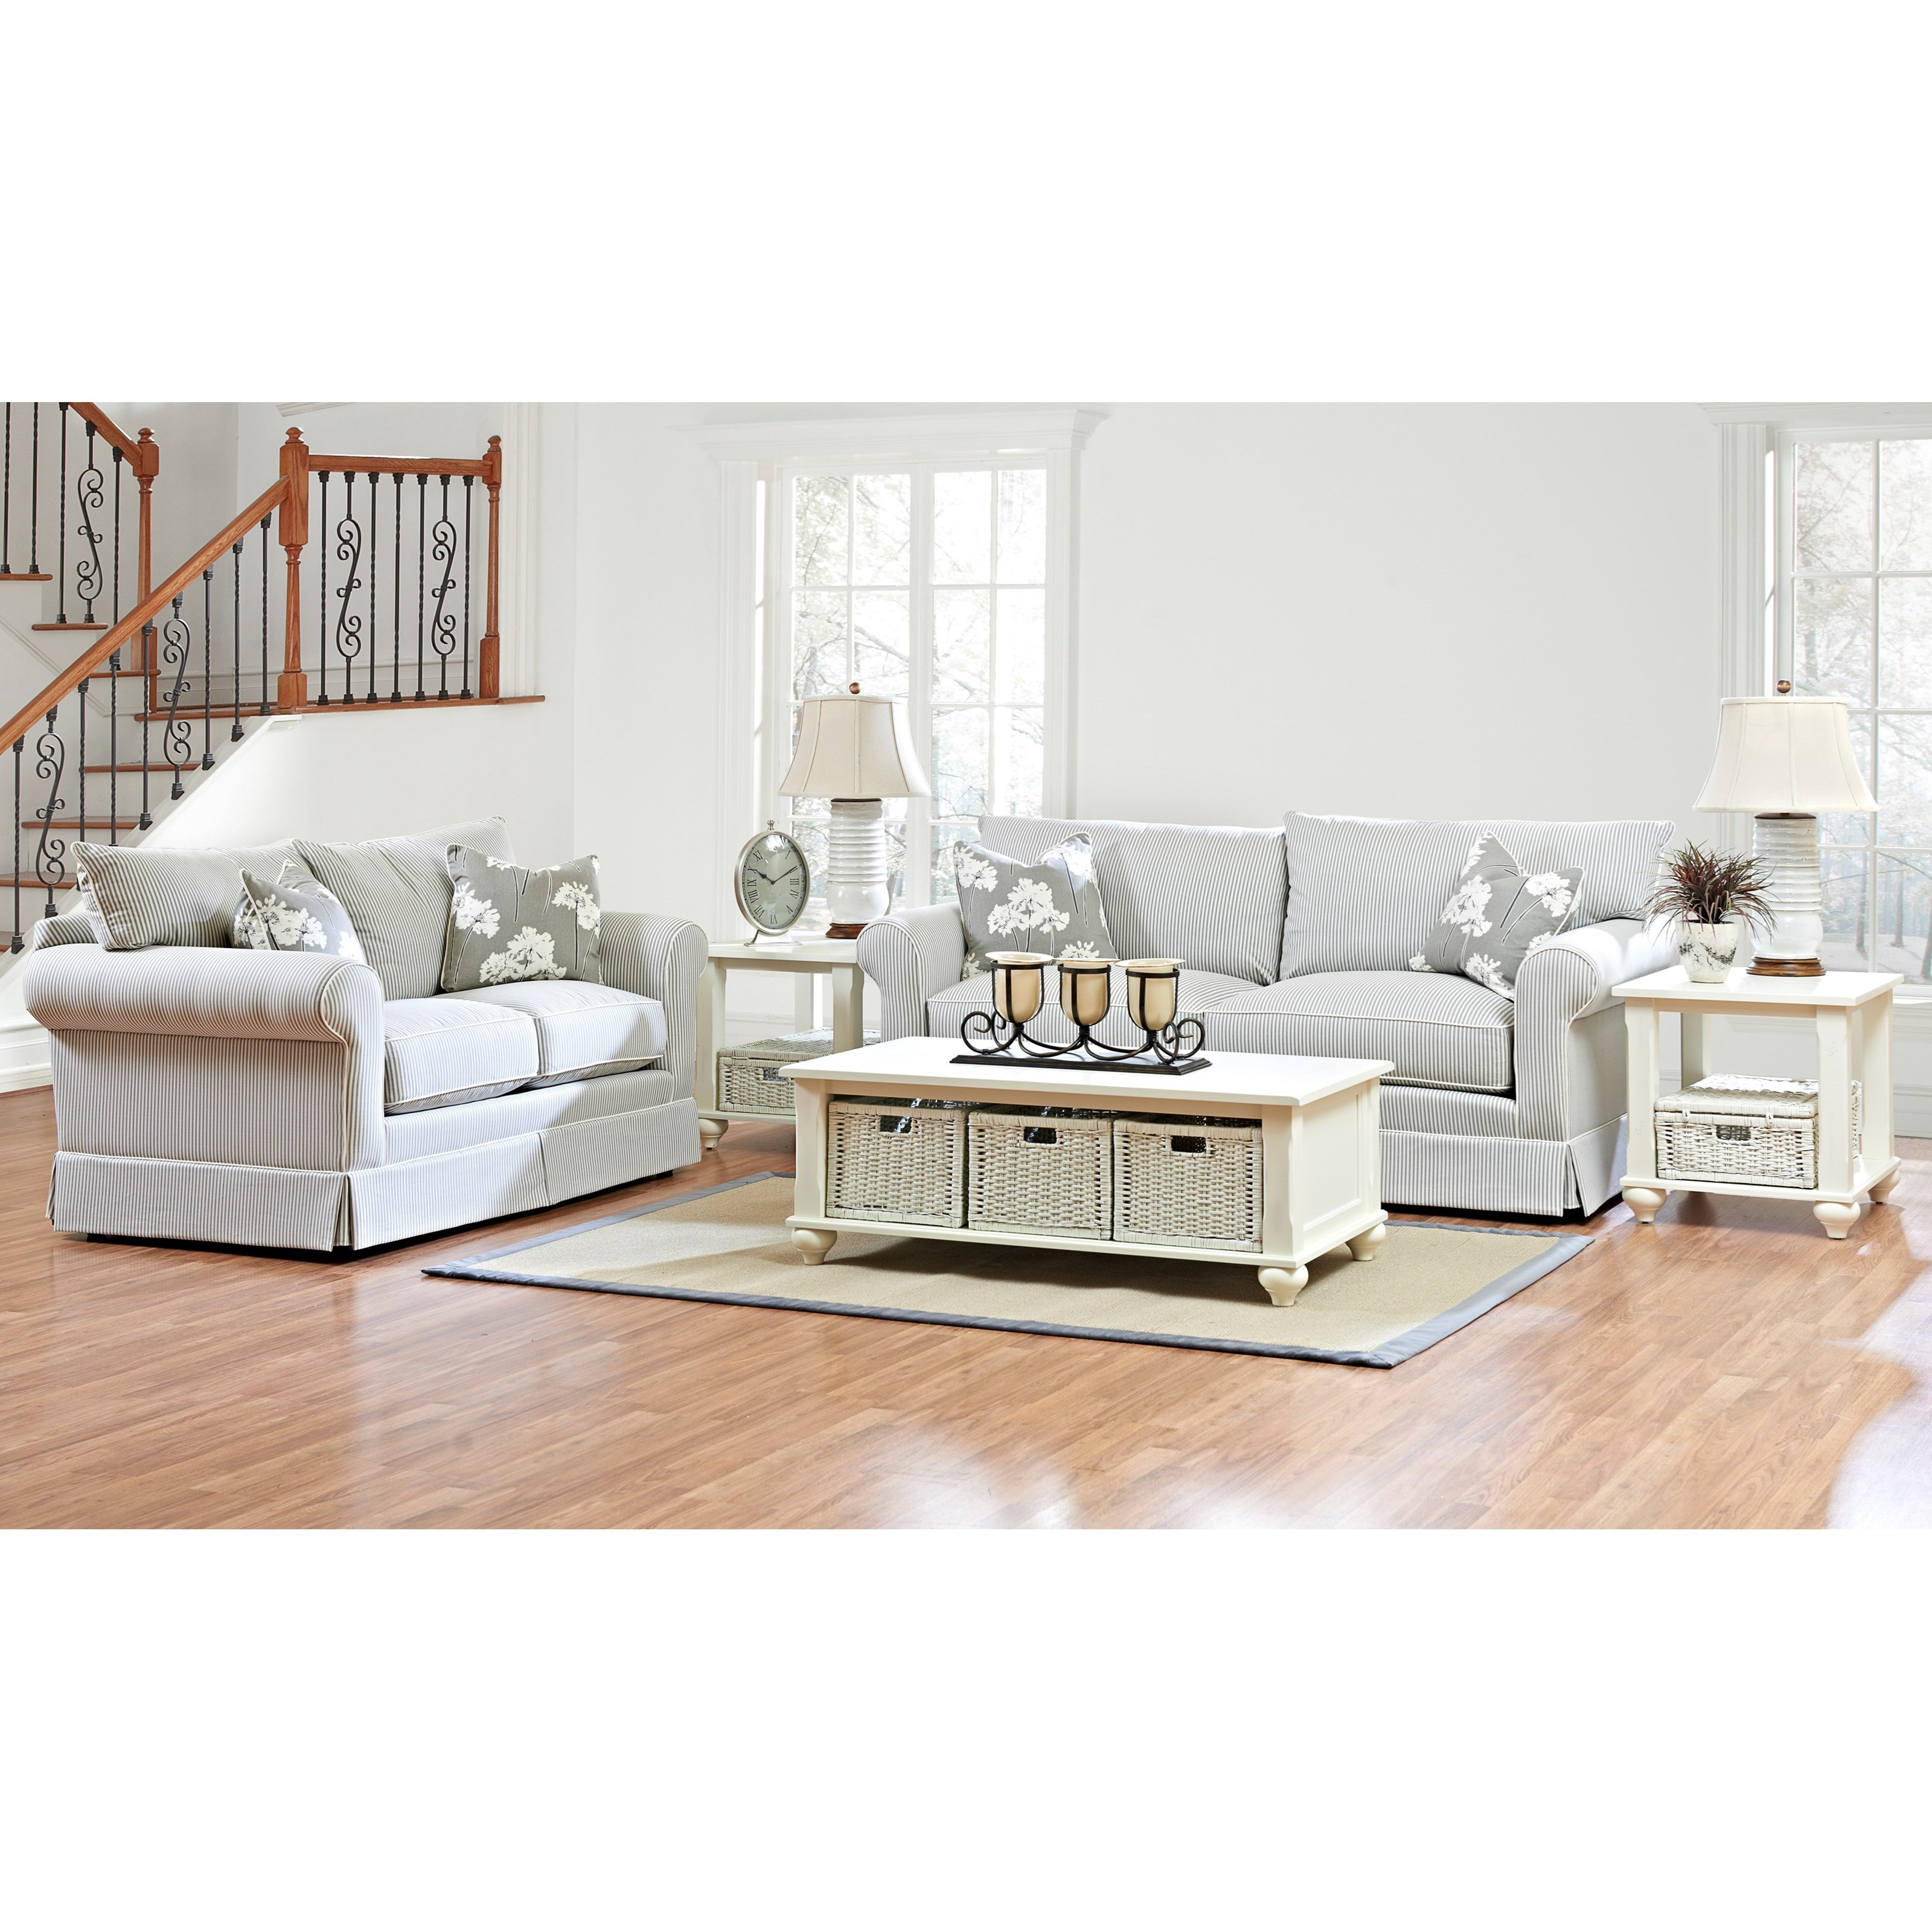 Klaussner Jenny Living Room Group - Item Number: D16700 Living Room Group 1